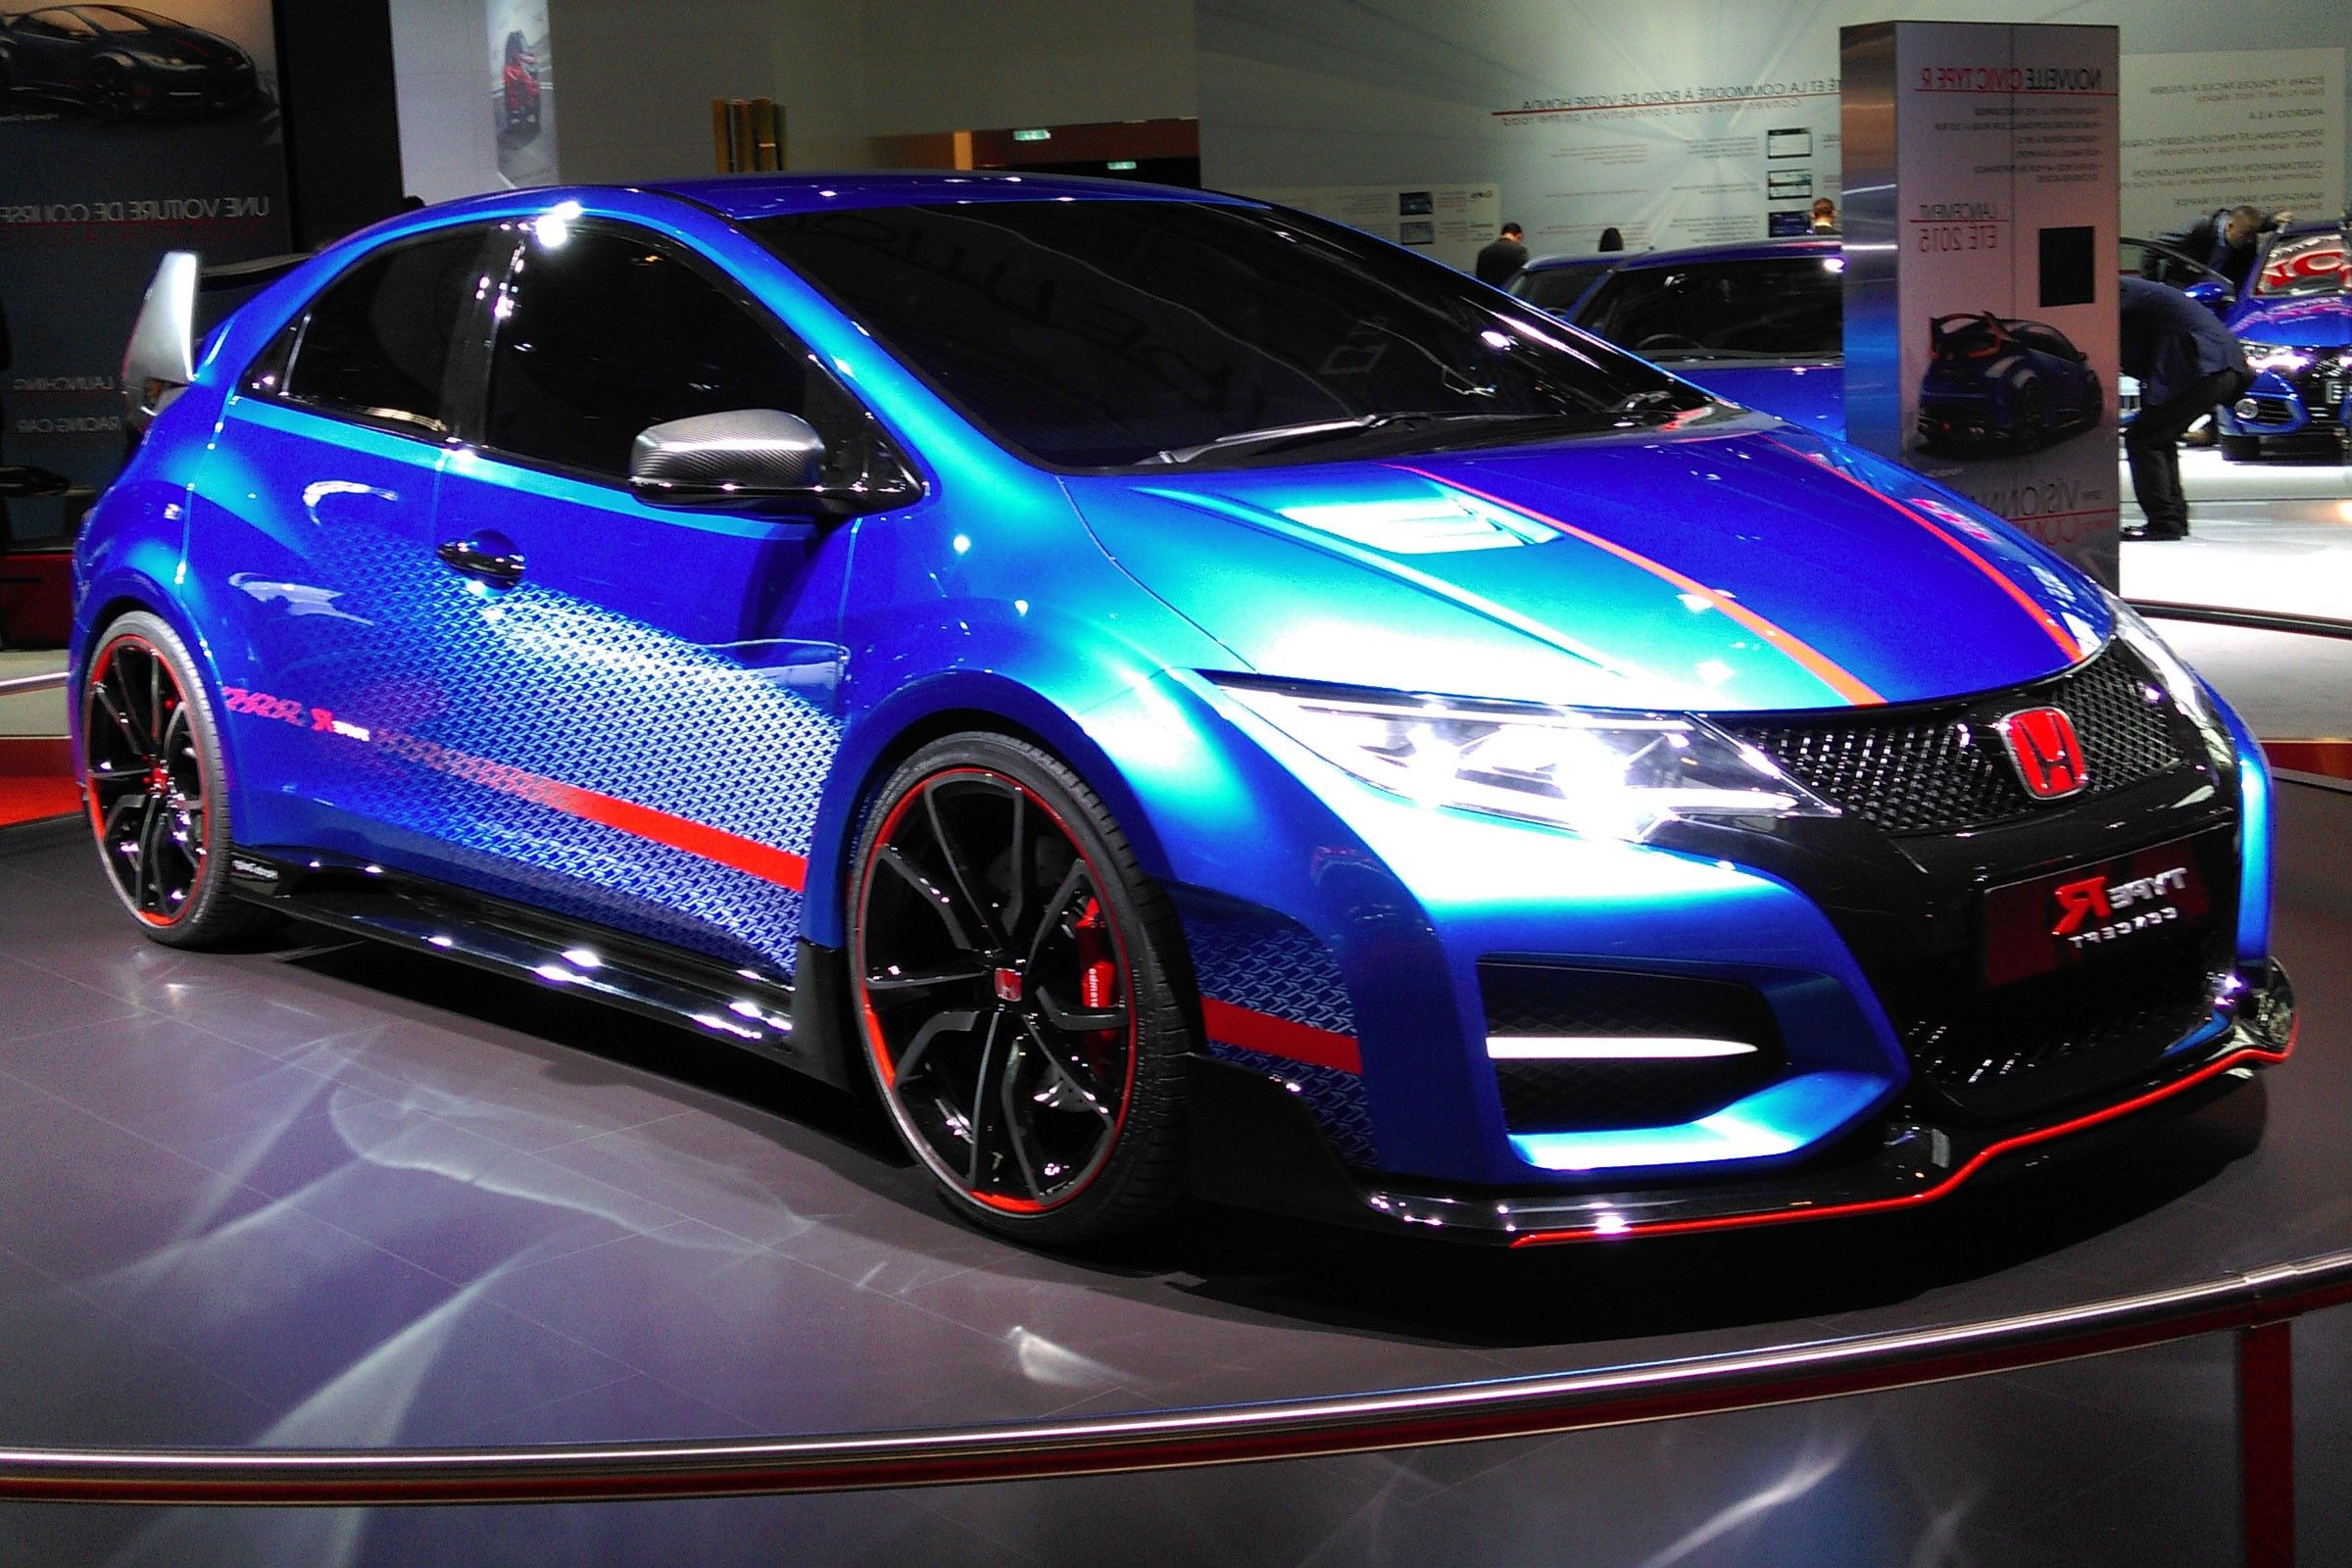 2018 honda civic type r new suspension about specifications car engine price overview interior exterior and hd image wallpaper